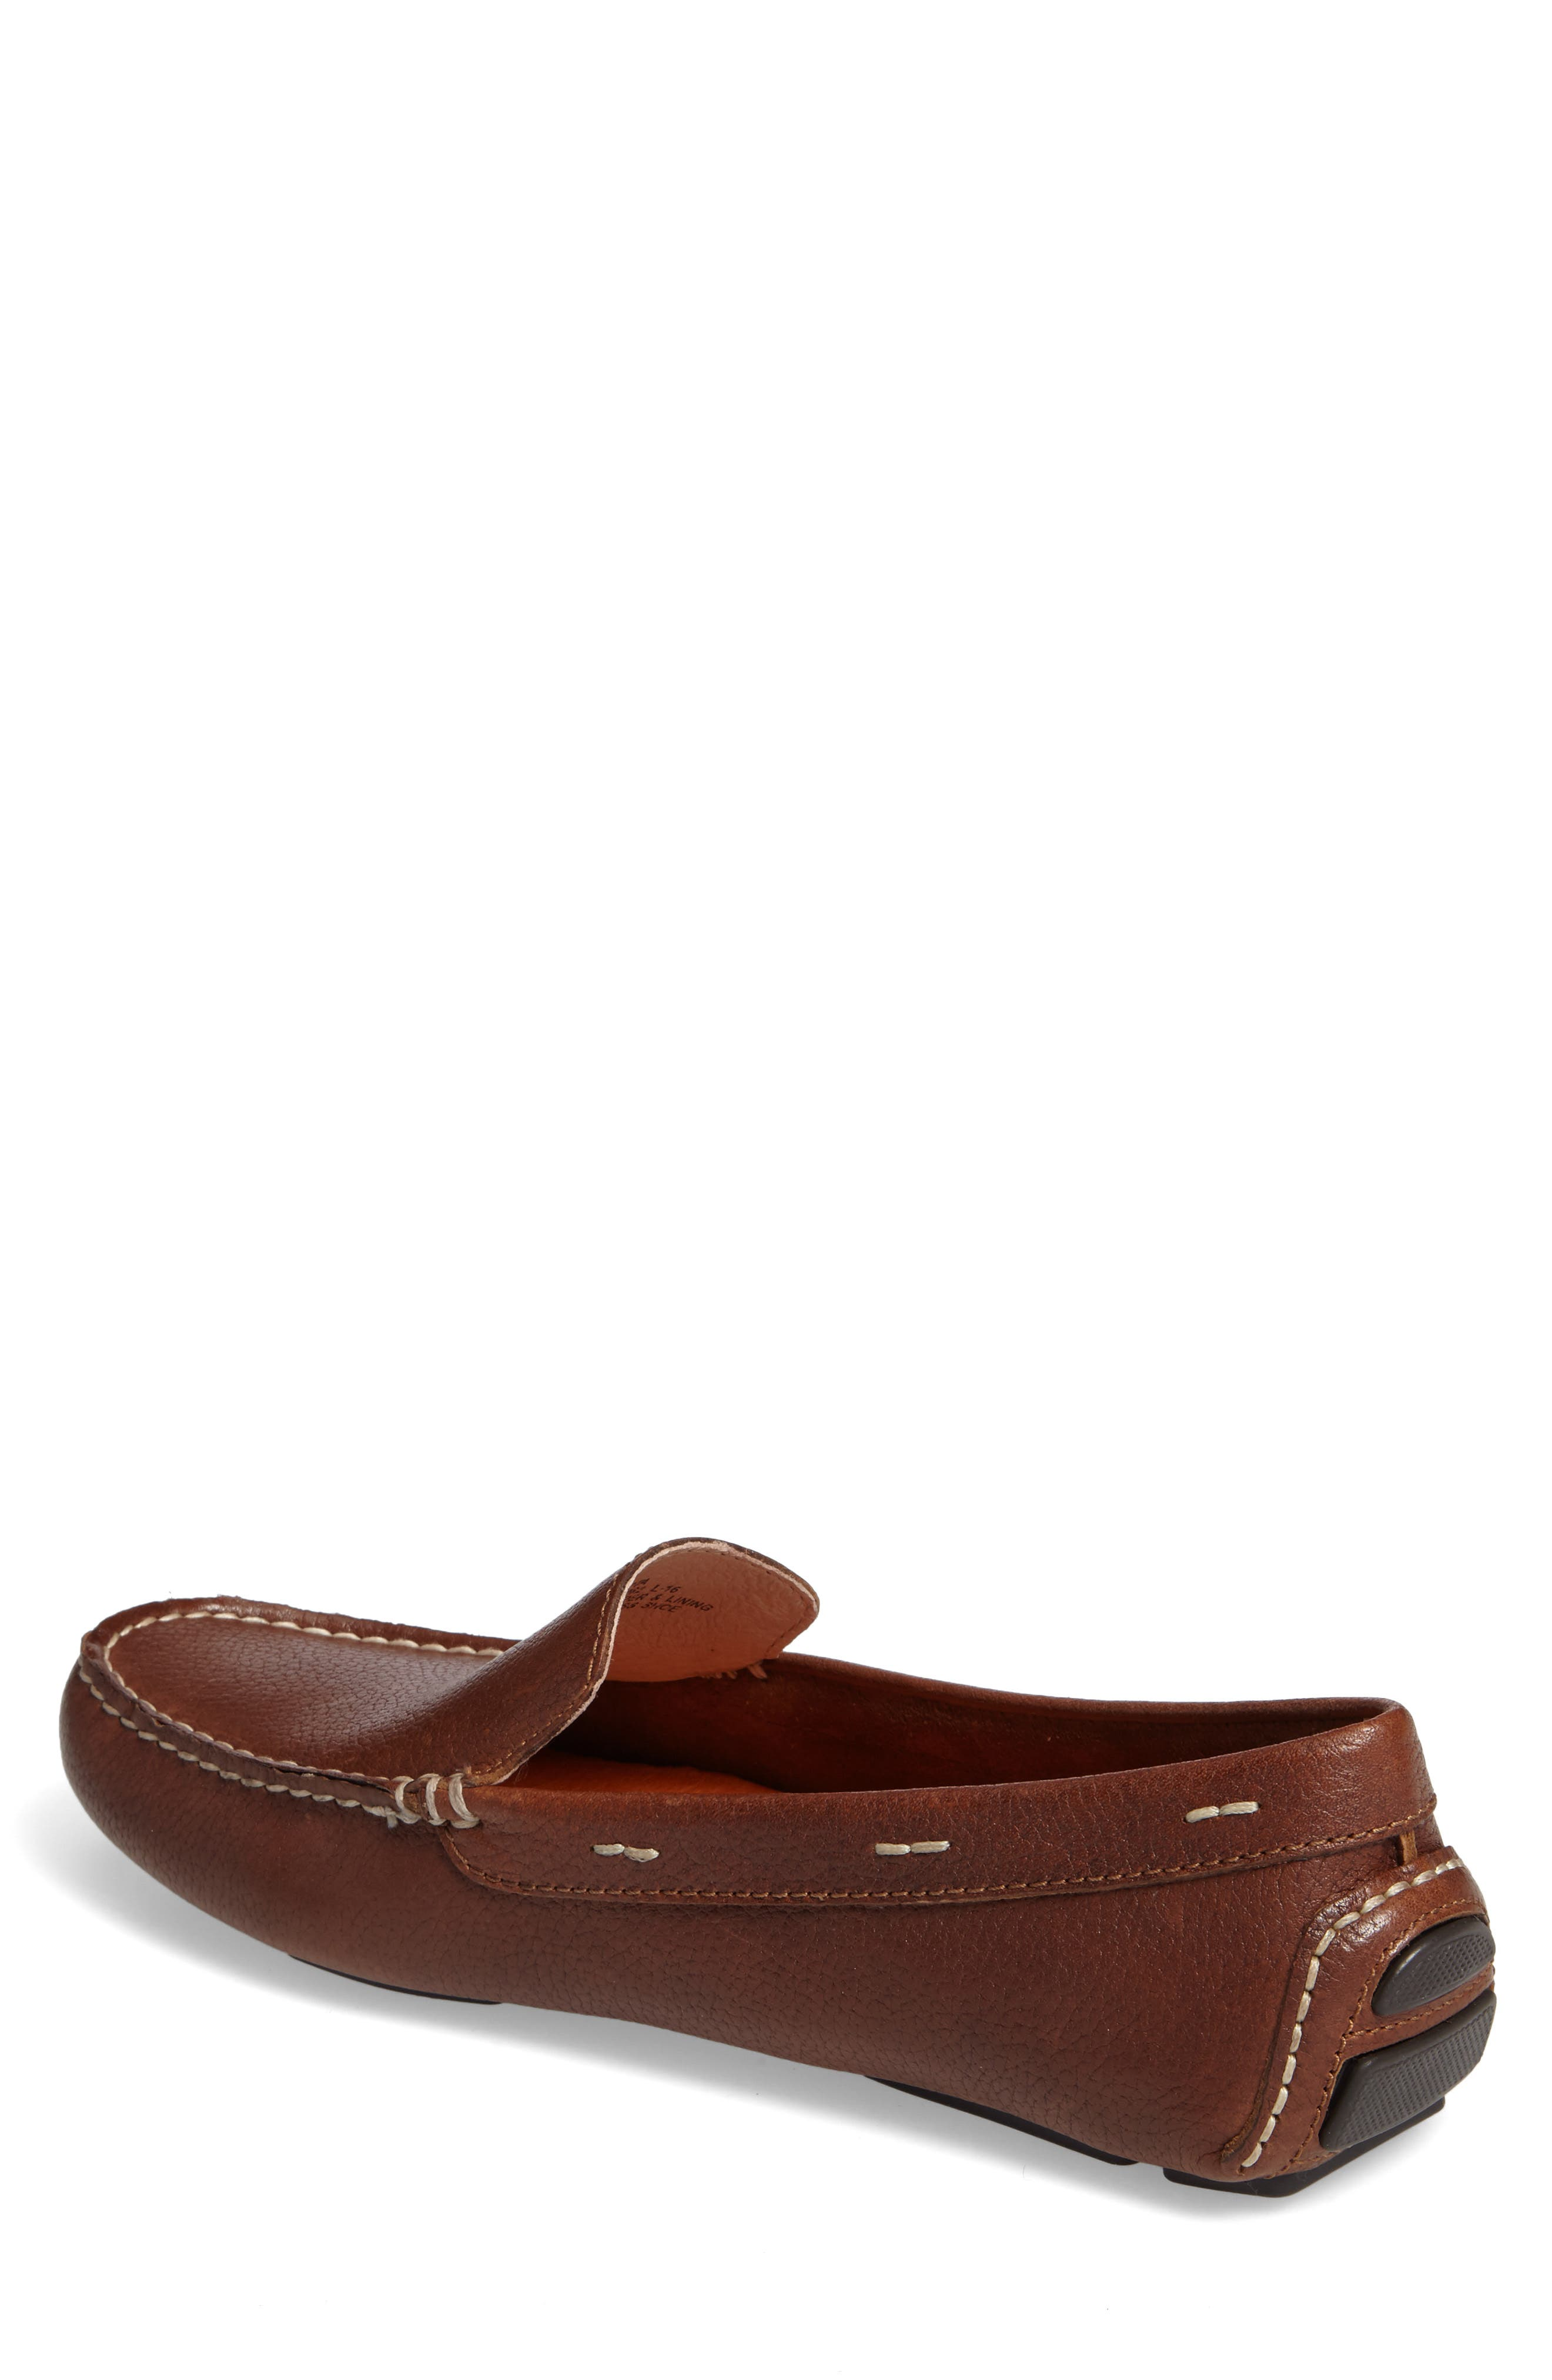 Pagota Driving Loafer,                             Alternate thumbnail 2, color,                             DARK BROWN LEATHER